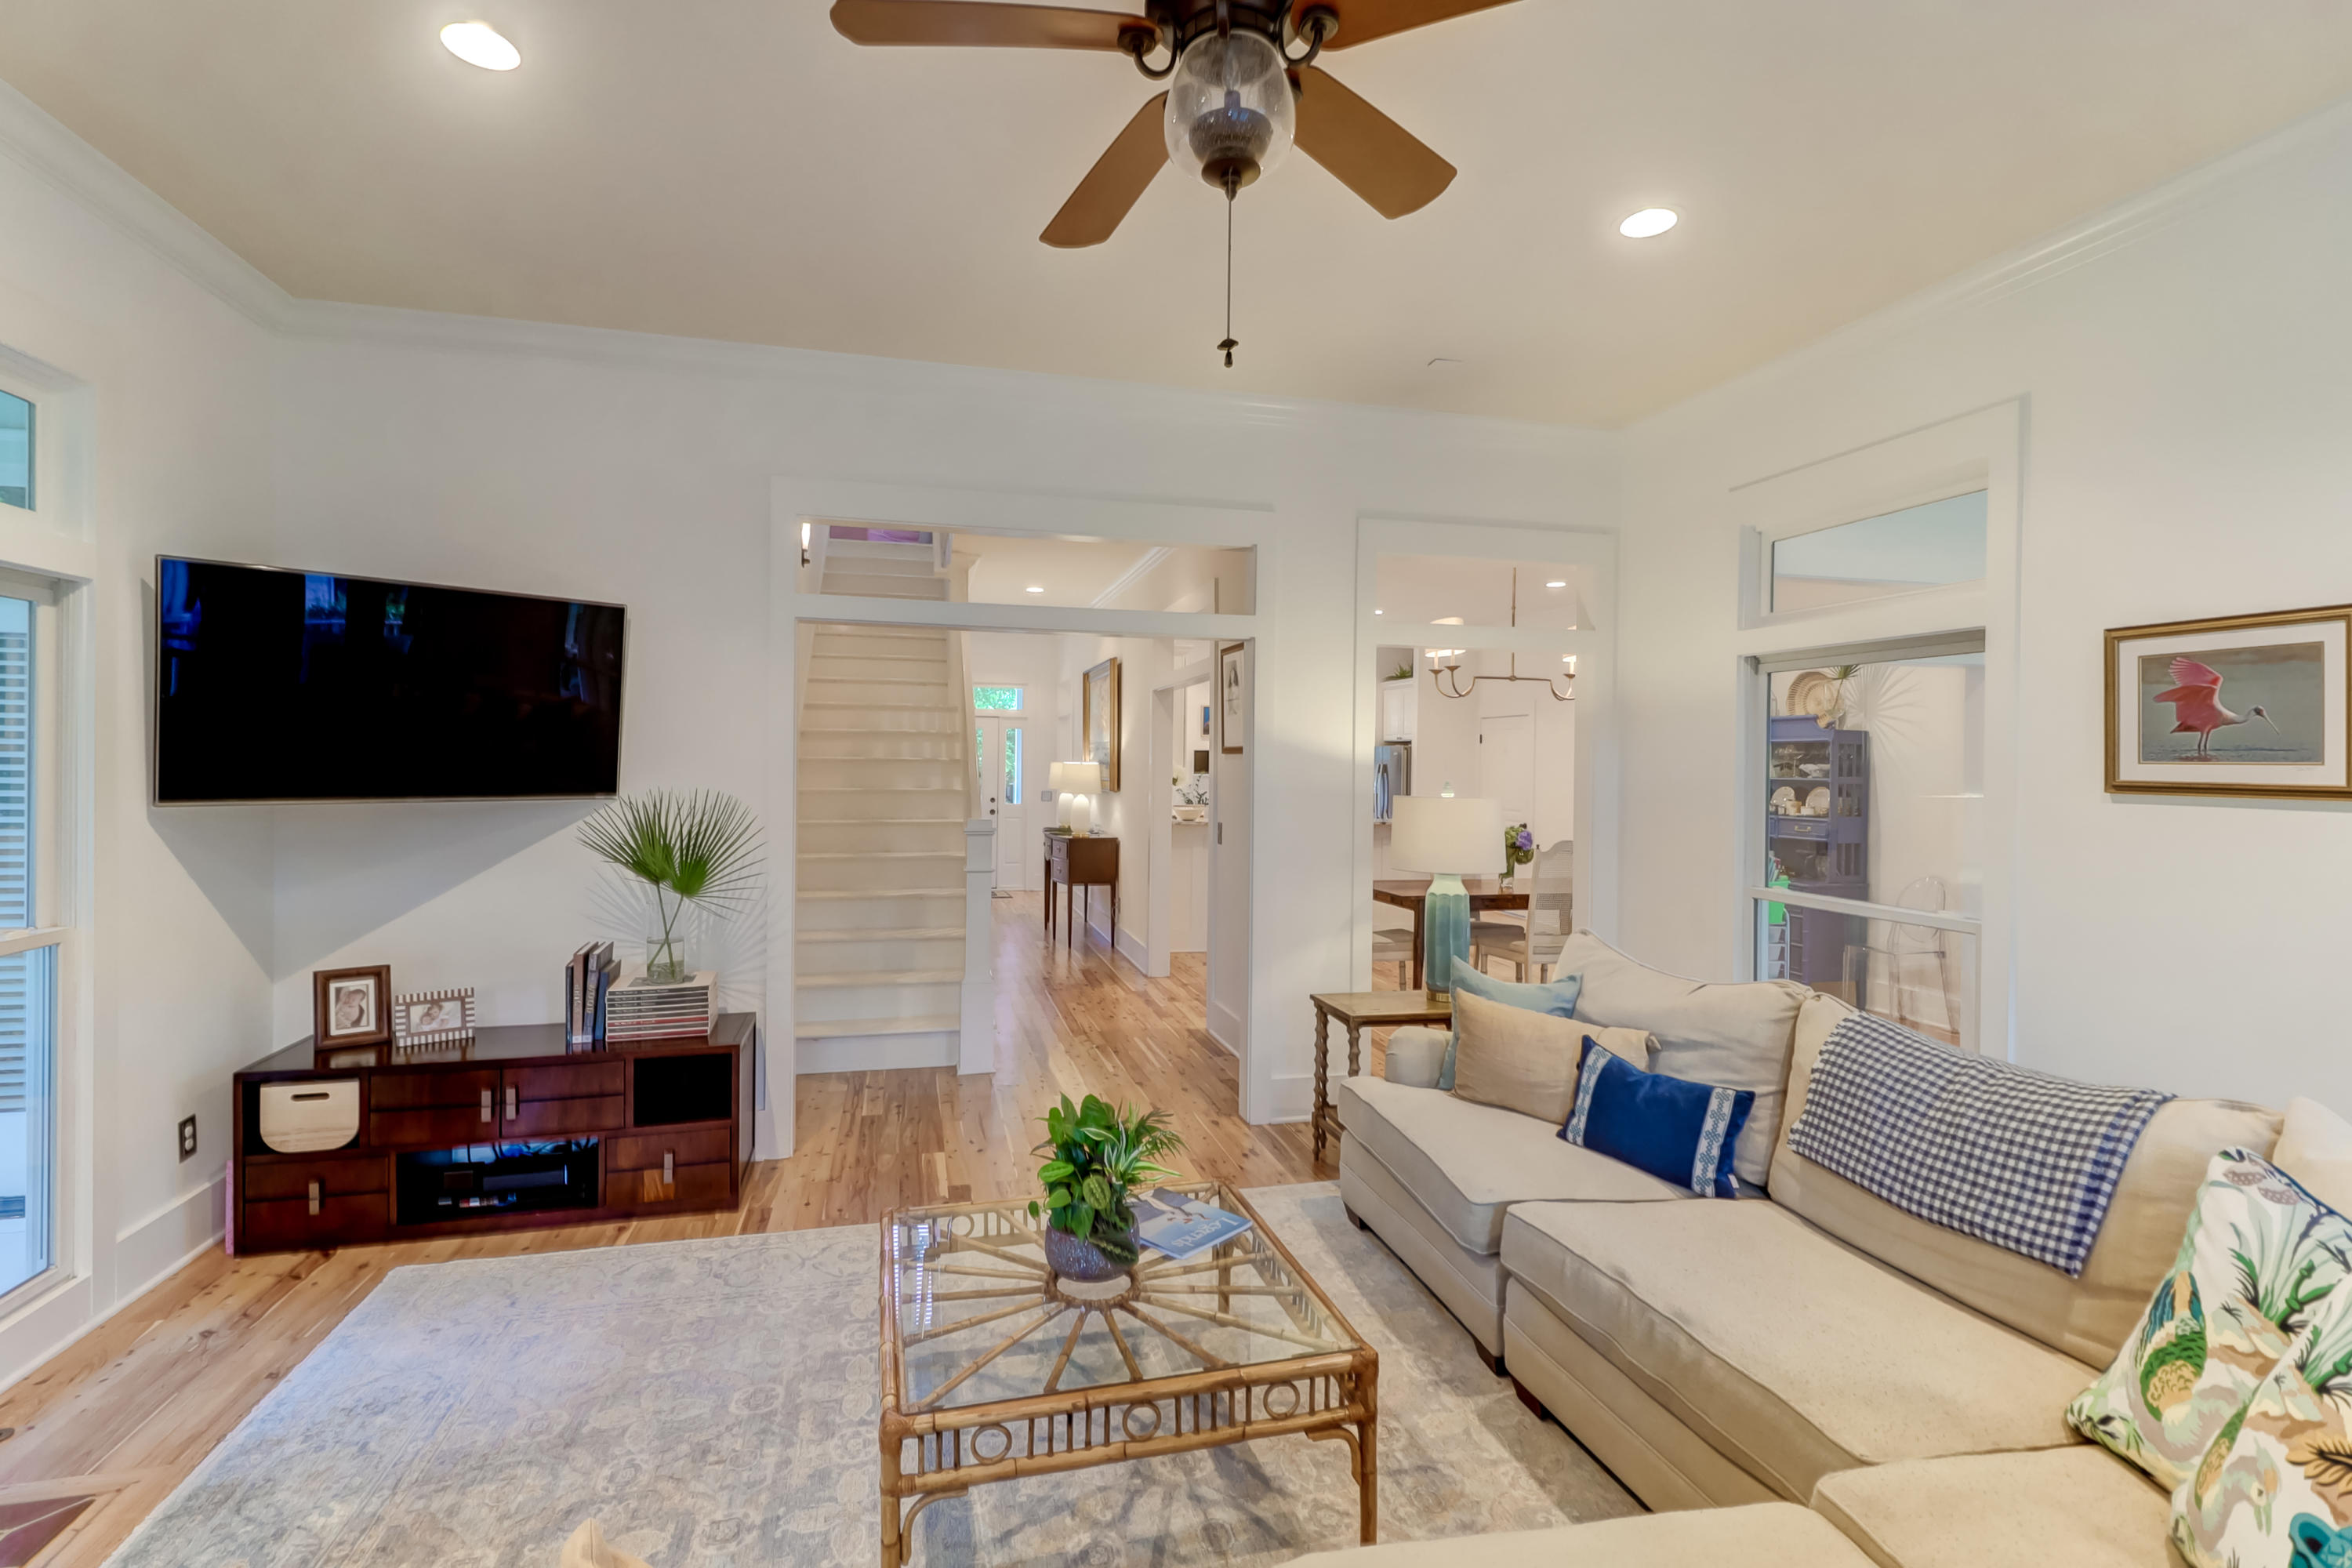 The Villages In St Johns Woods Homes For Sale - 5056 Coral Reef Dr, Johns Island, SC - 59